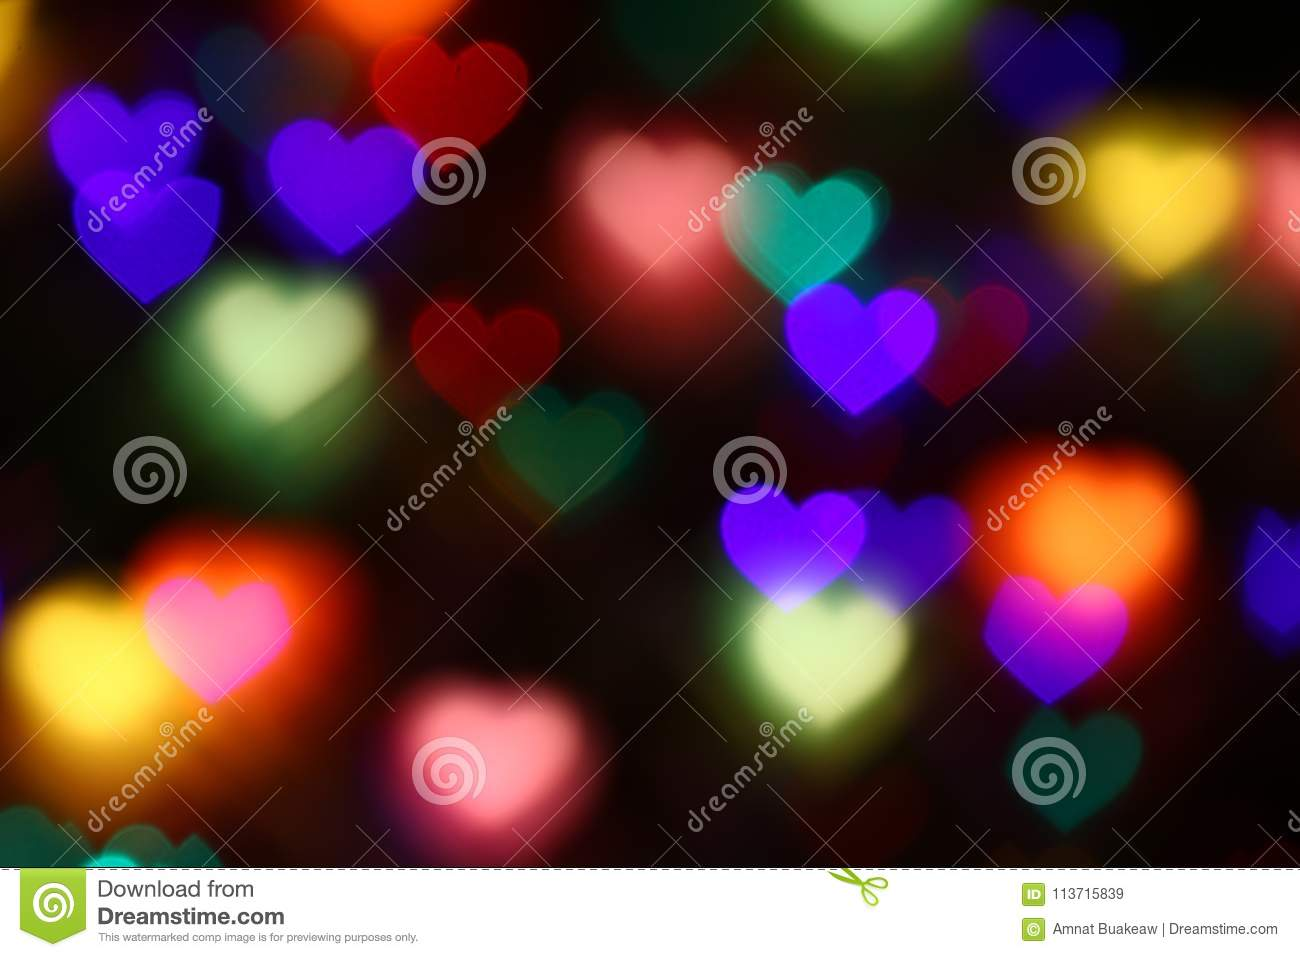 Beautiful Wallpaper Night Colorful - valentines-colorful-heart-shaped-bokeh-black-background-lighting-decoration-night-wallpaper-valentine-backdrop-blur-love-113715839  Collection.jpg